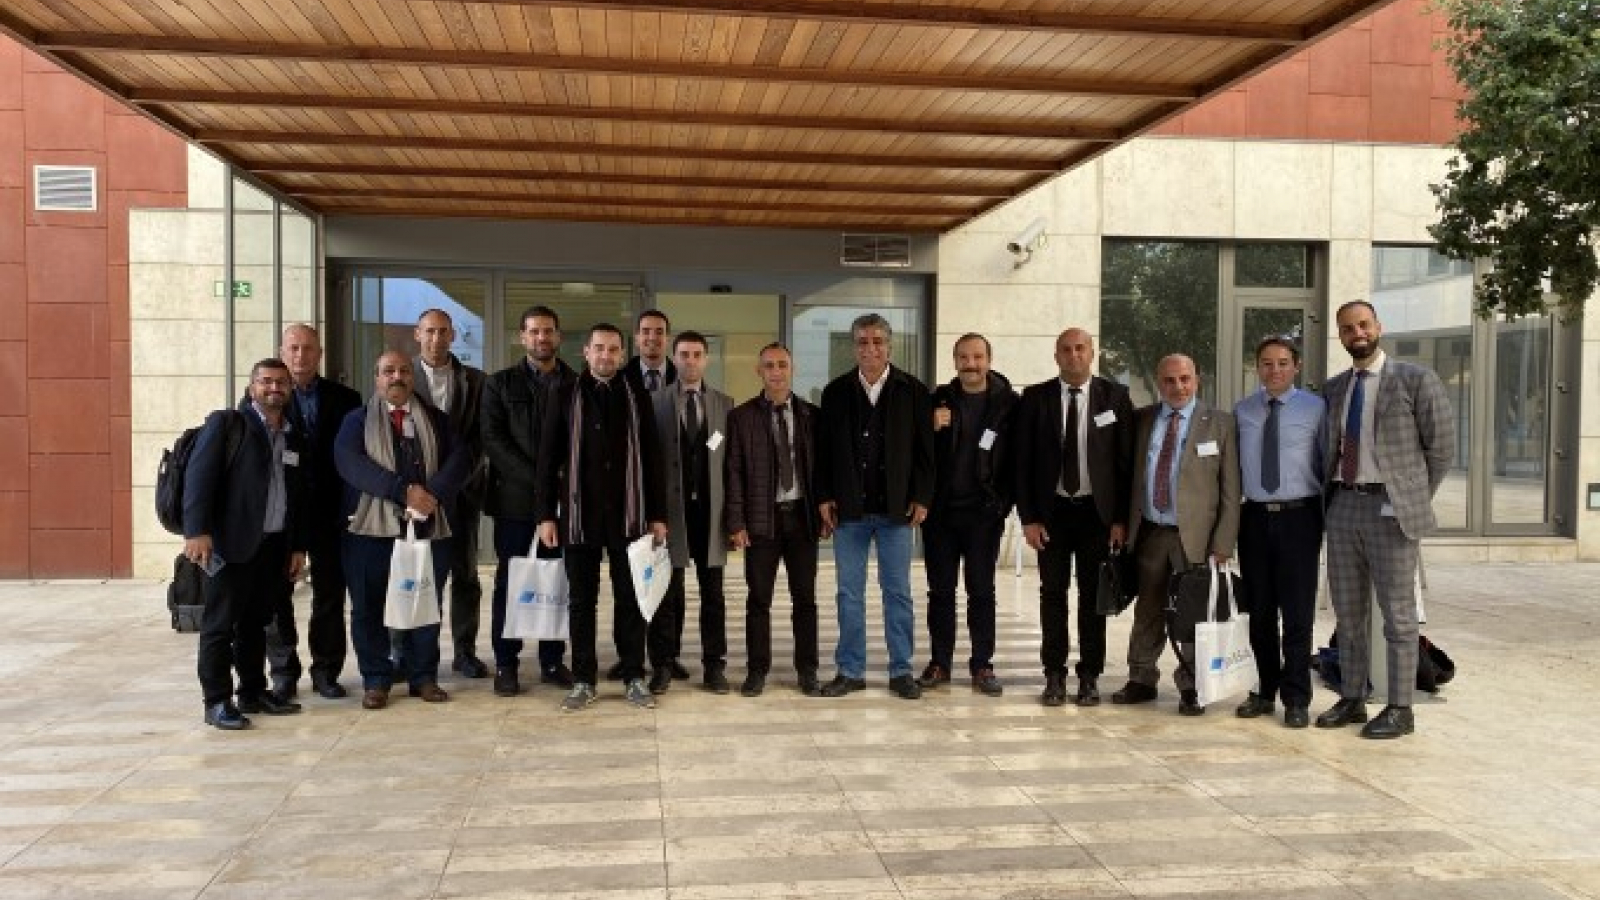 EU-funded SAFEMED IV project training focused on port facility security